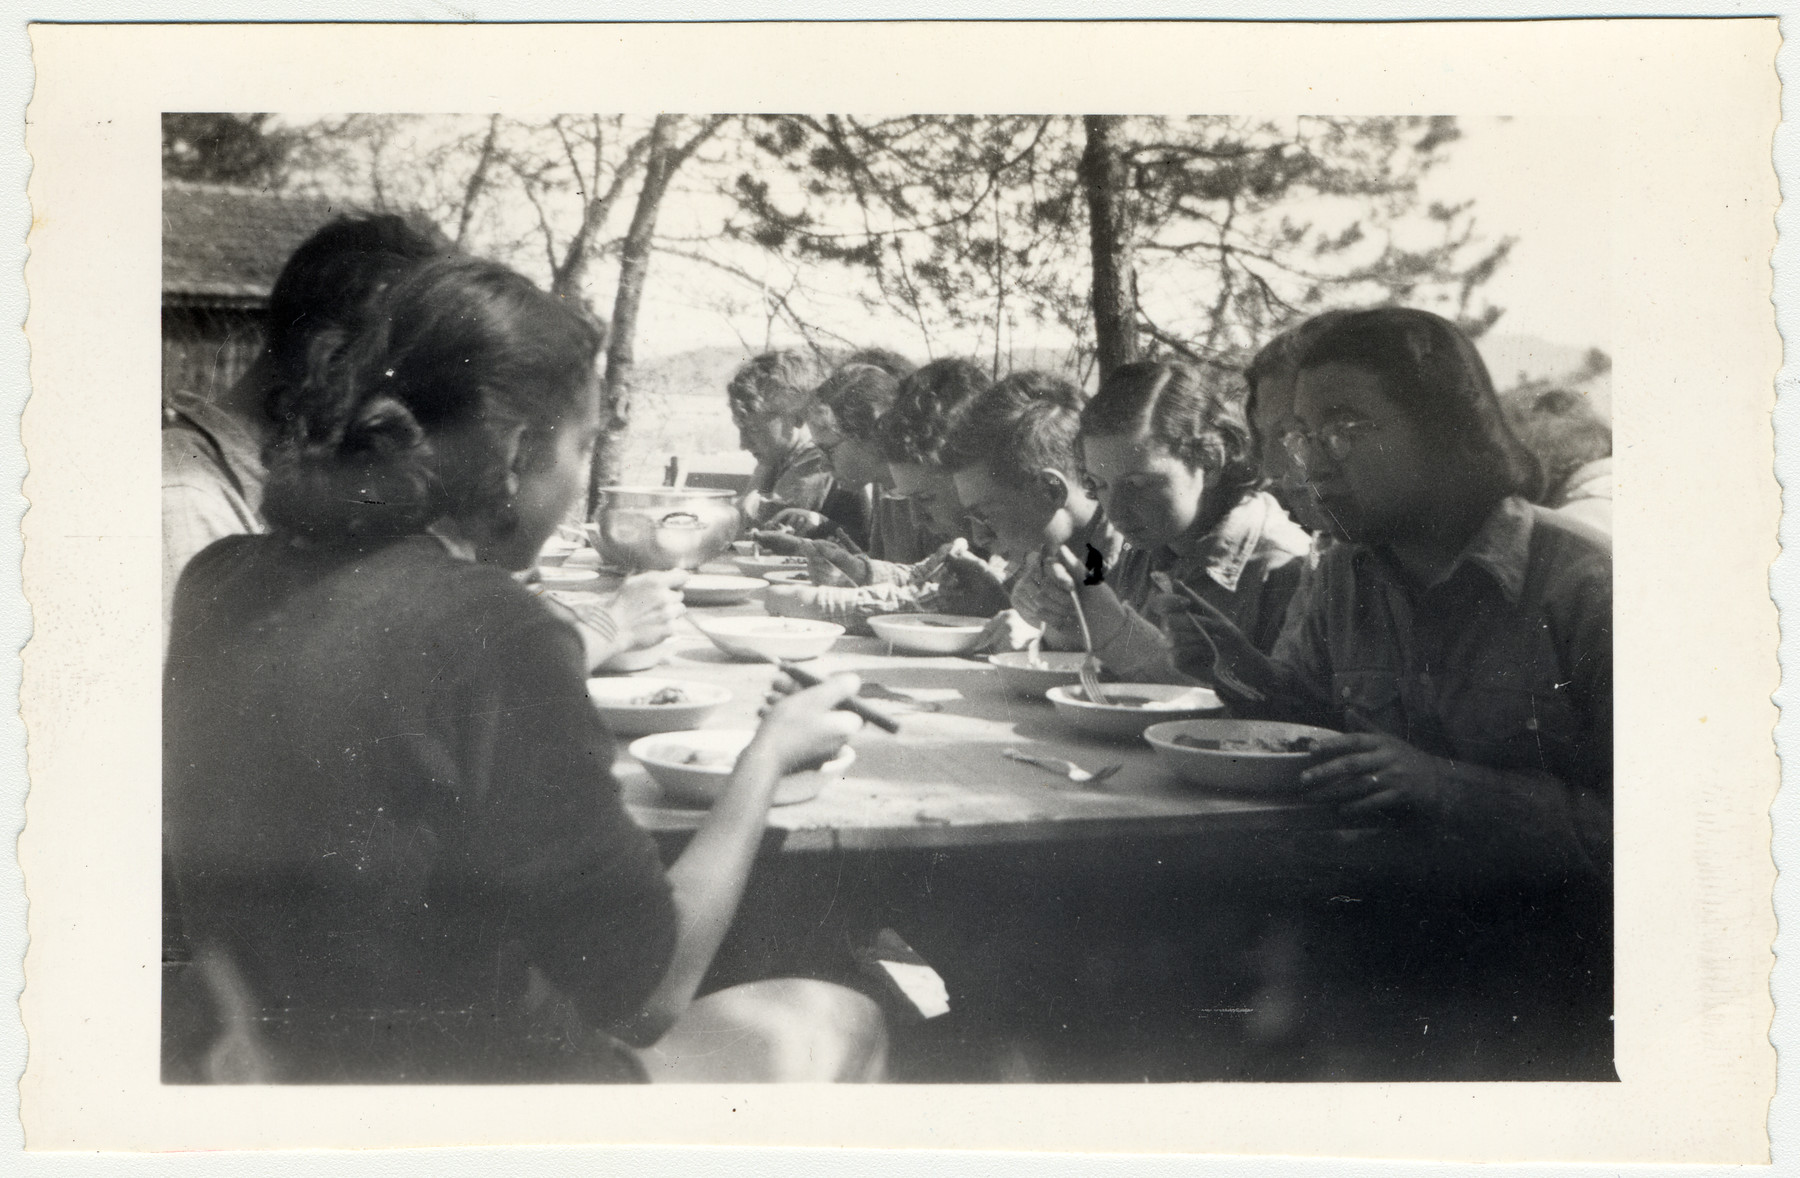 Ruth Rappaport and friends from the Zionist youth movement eat lunch outside.